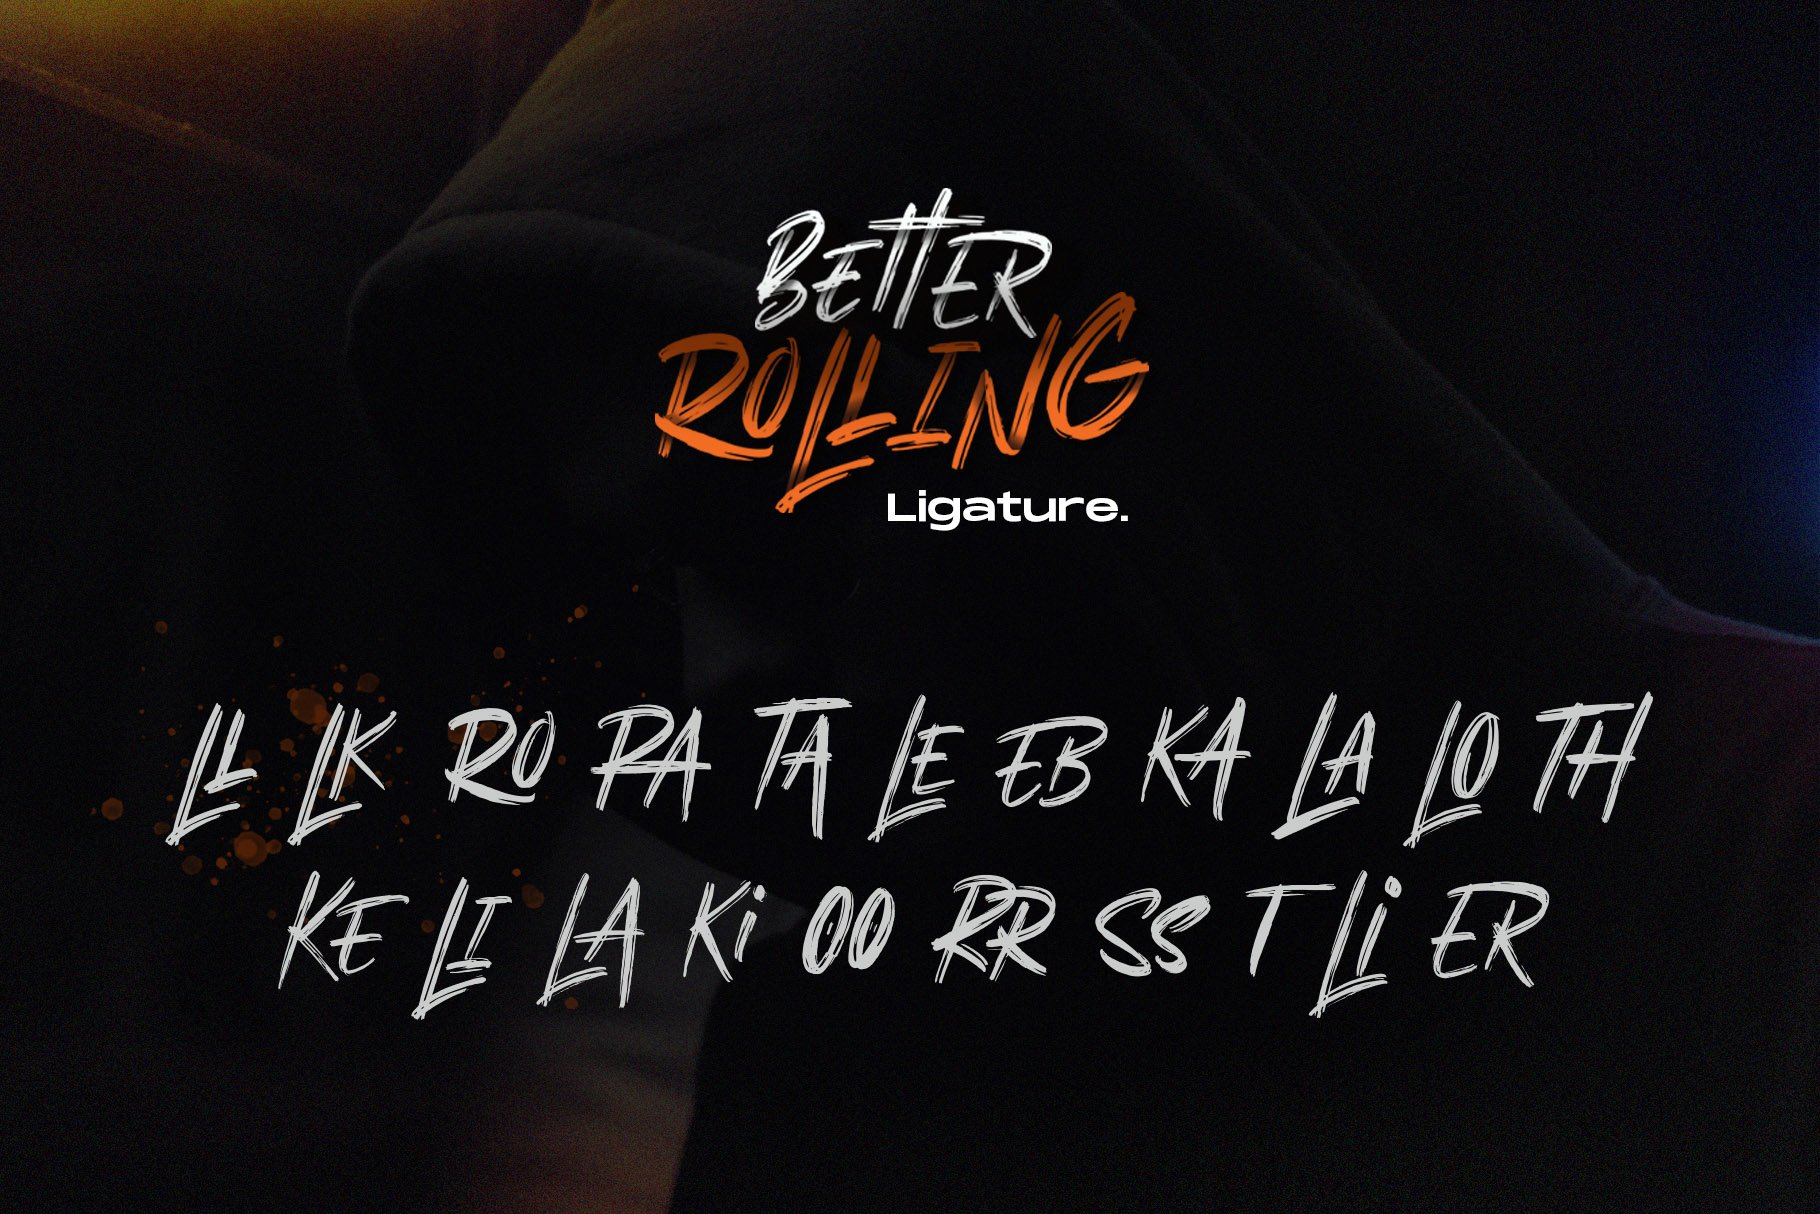 Better Rolling - Brush Font example image 3